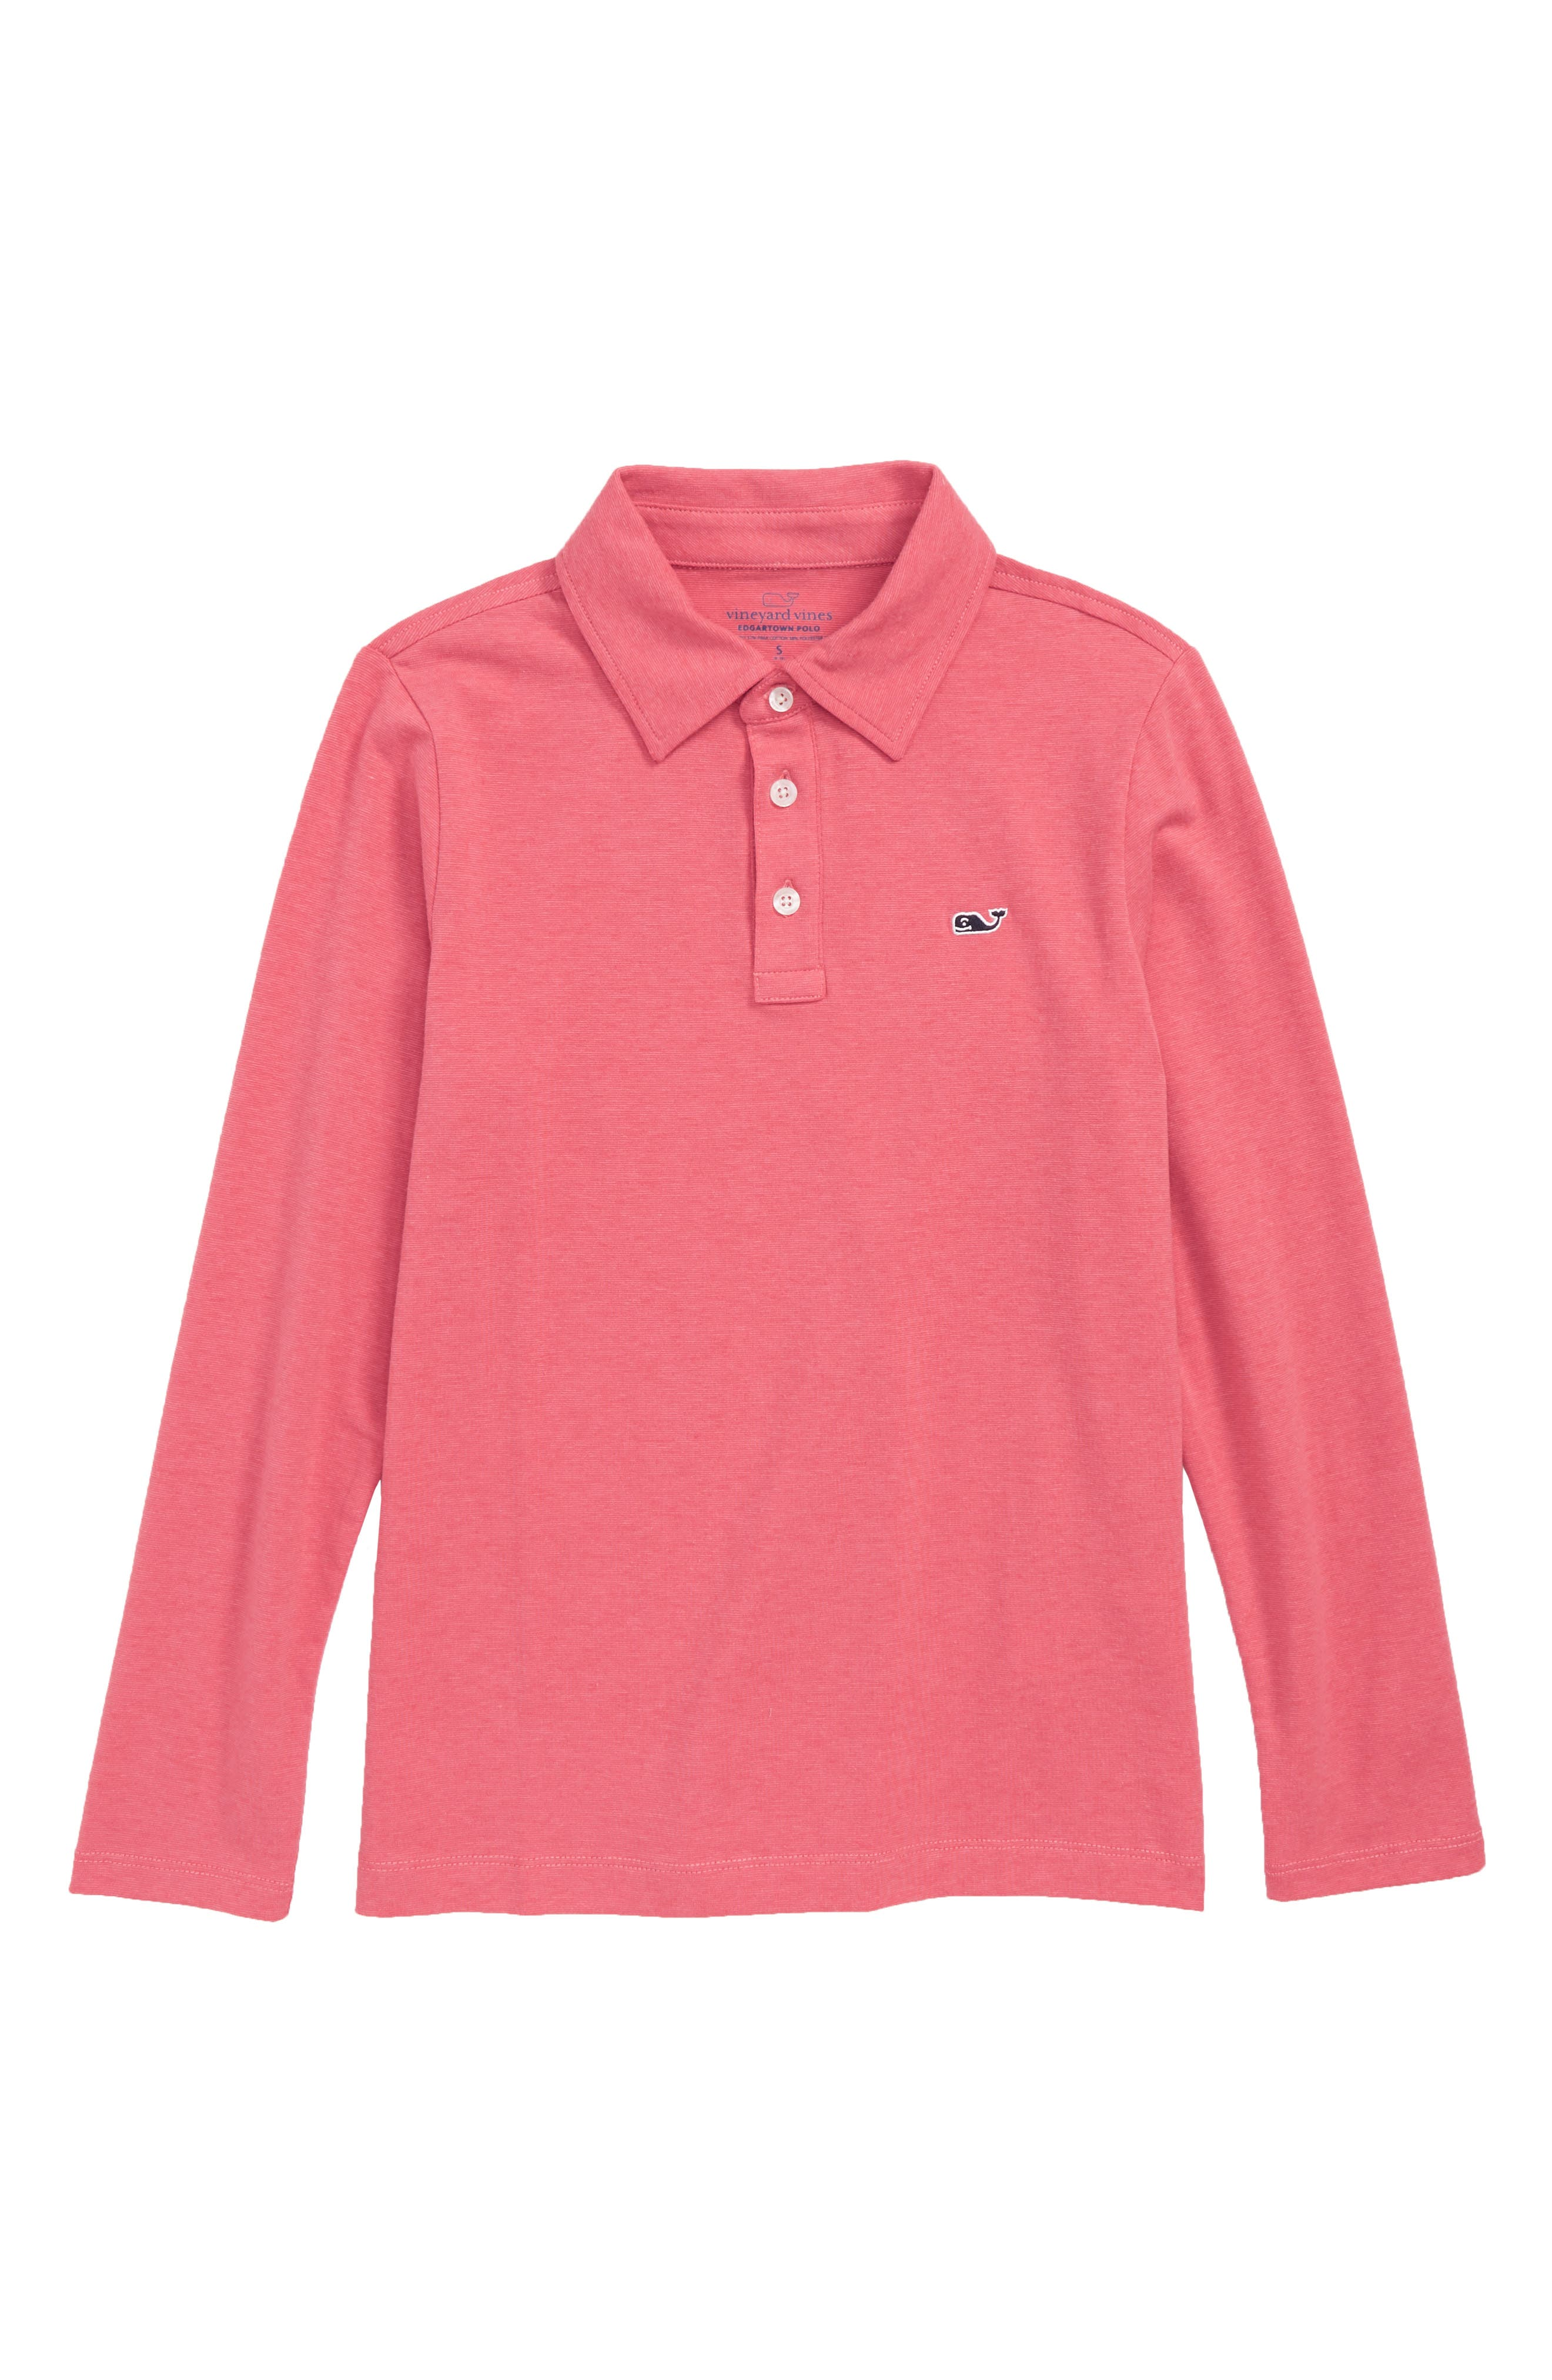 Edgartown Long Sleeve Polo,                         Main,                         color, Sailors Red